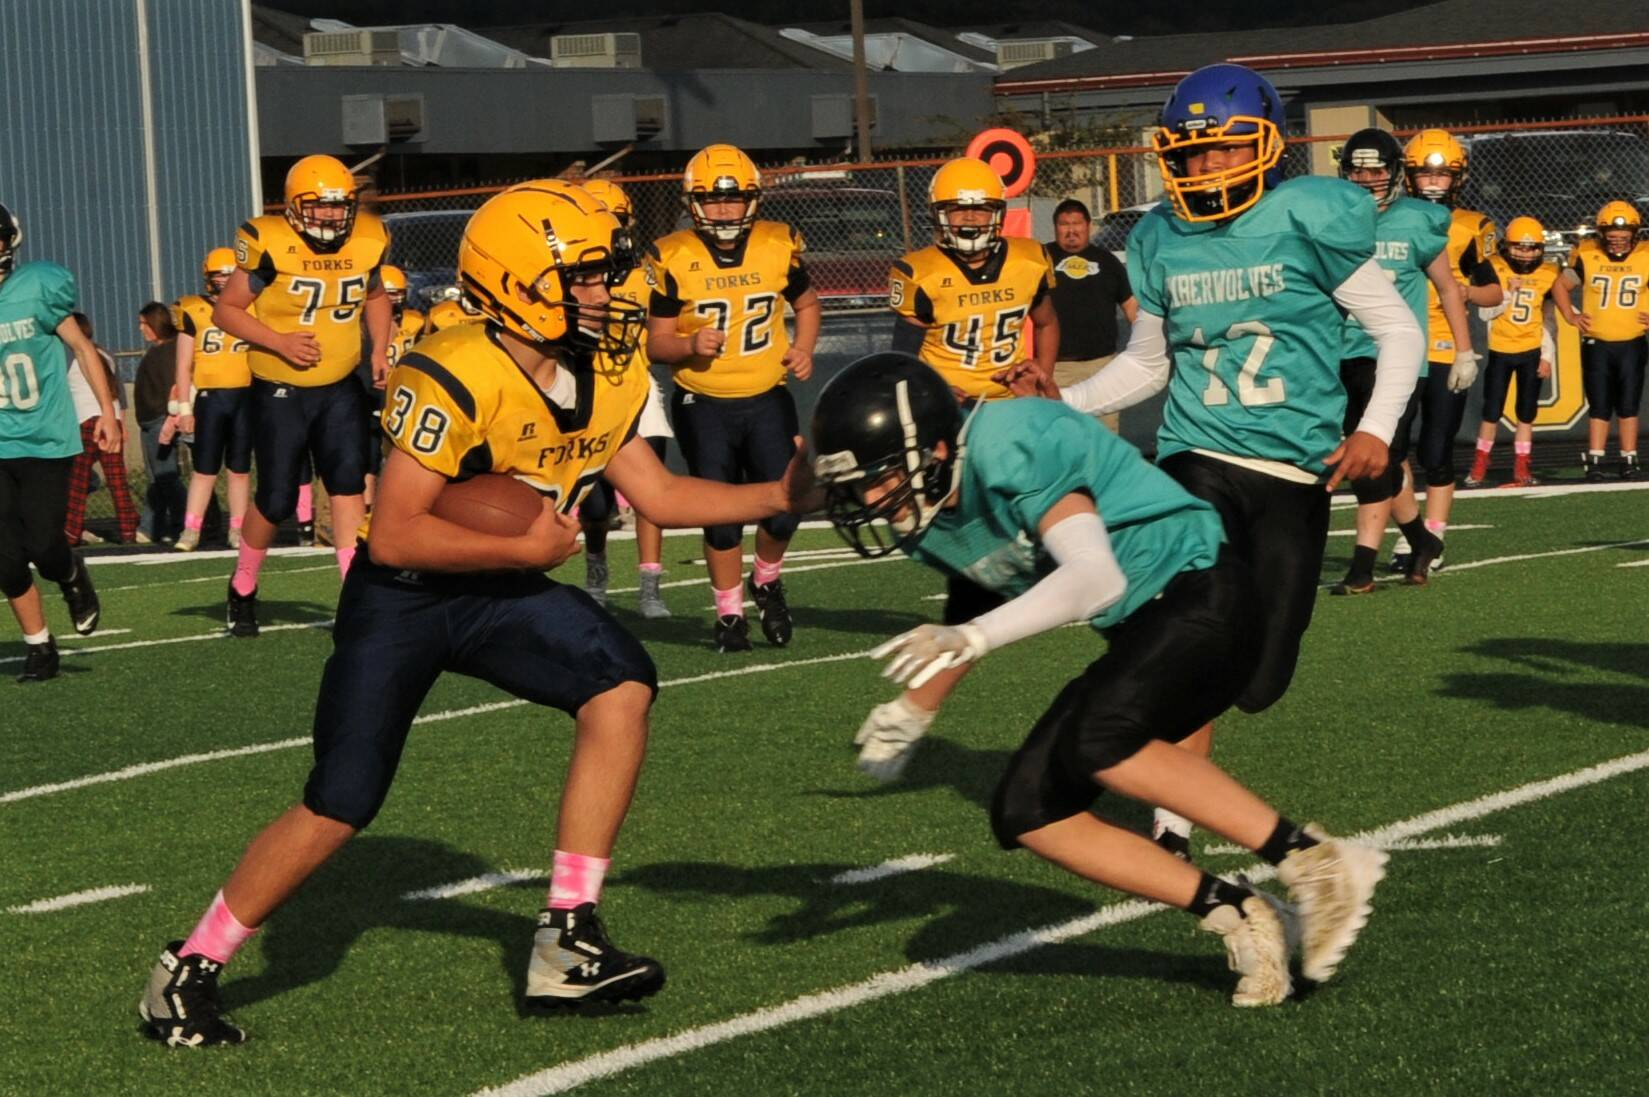 At right: Spartan Kade Highfield (38) carries the ball against Sequim defenders. Also in the action are Spartans Kenny Daman (75), Carter Coberley (72), and Carlos Soto (45).